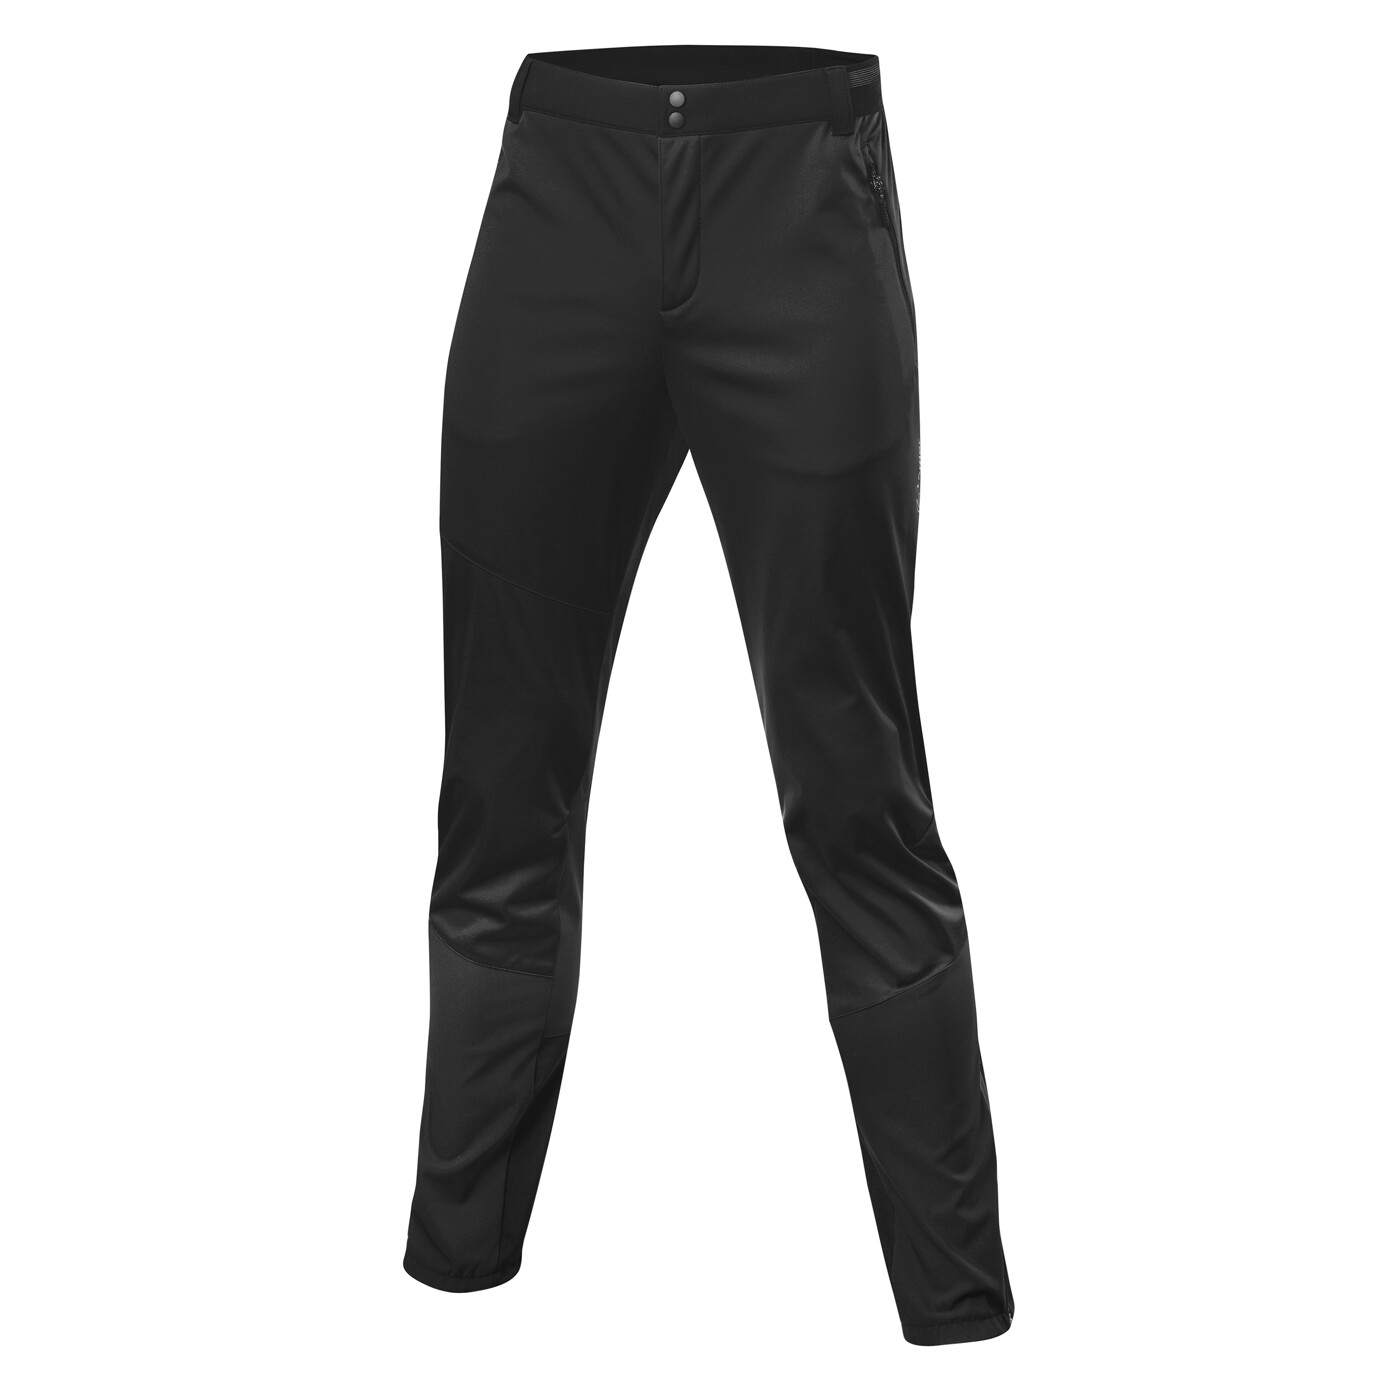 LÖFFLER M TOURING PANTS PACE WS LIGHT - Herren